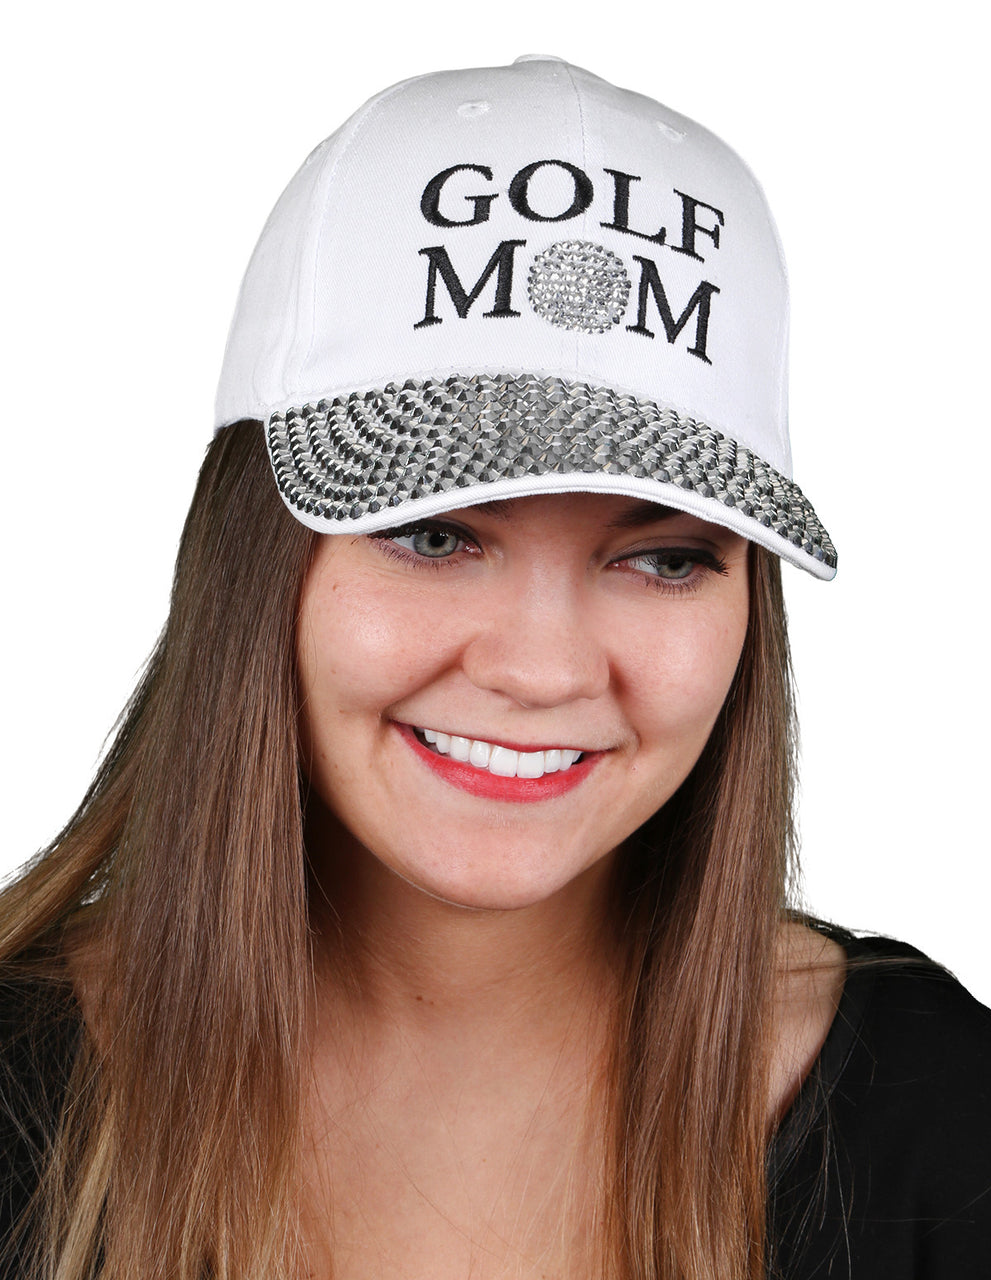 Funky Junque's Women's Silver Rhinestone Bill Sports Mom Bling Baseball Cap Hat - Golf White